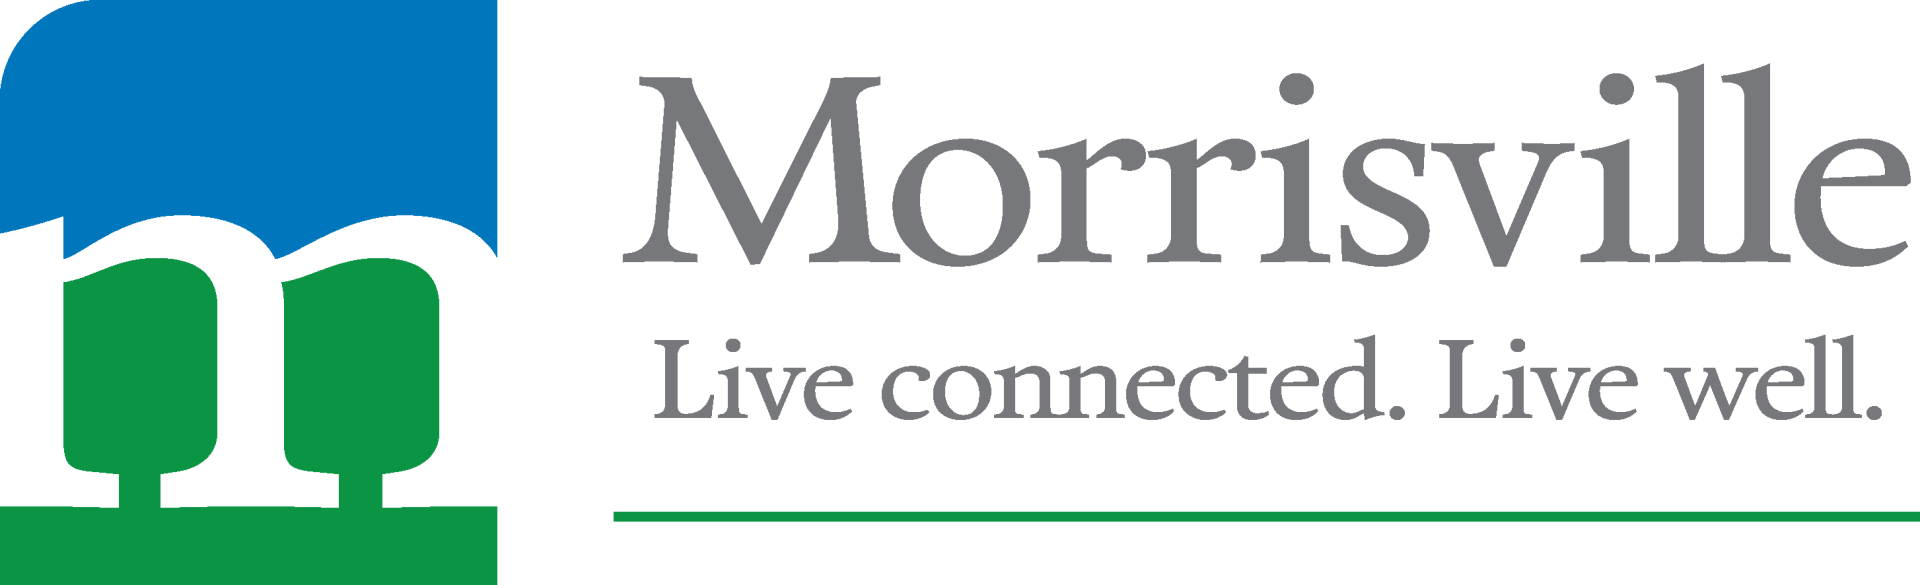 morrisville live connected logo